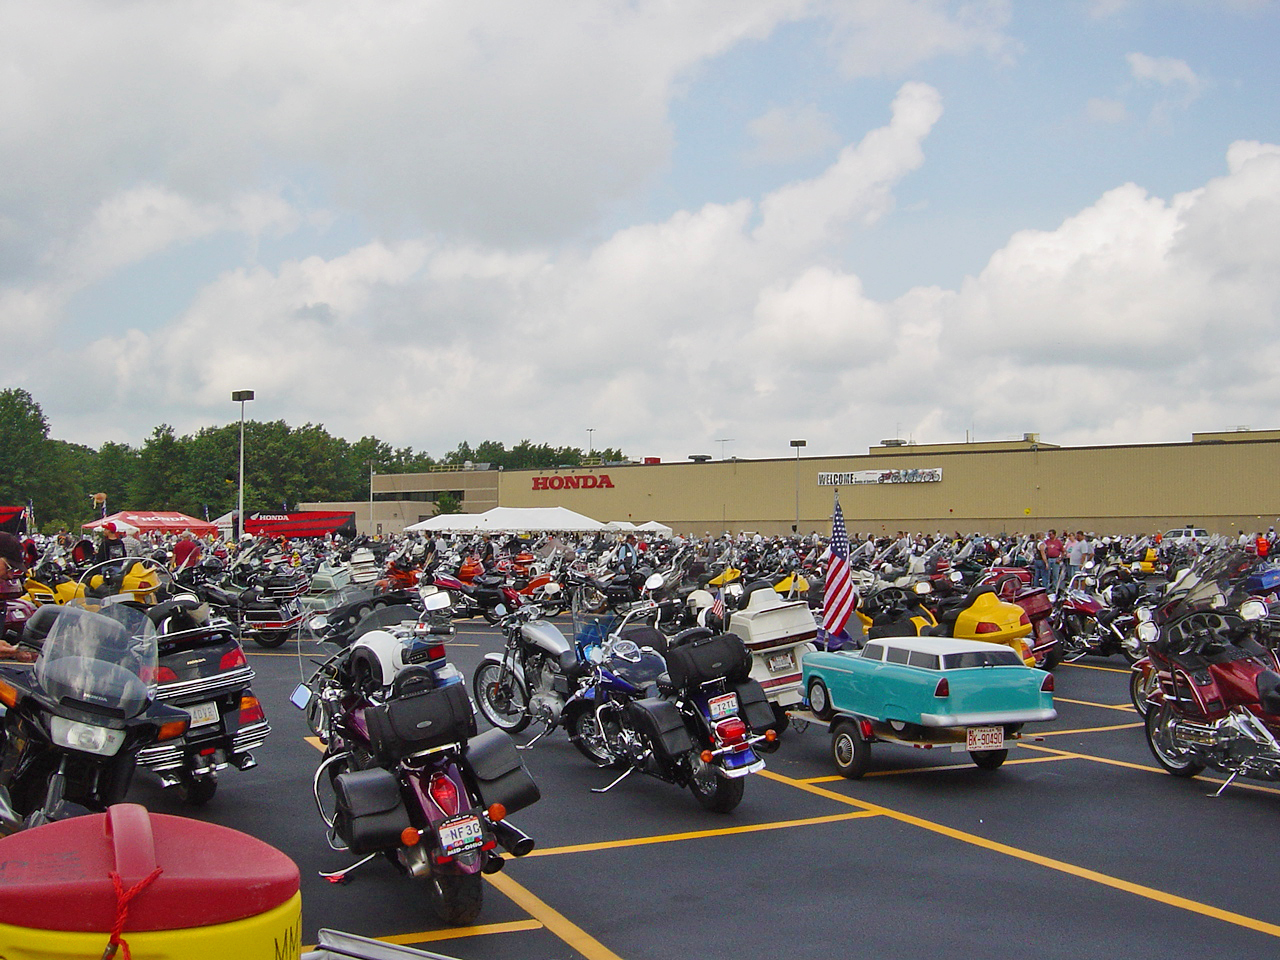 Motorcycle homecoming at Honda in Marysville in 2005